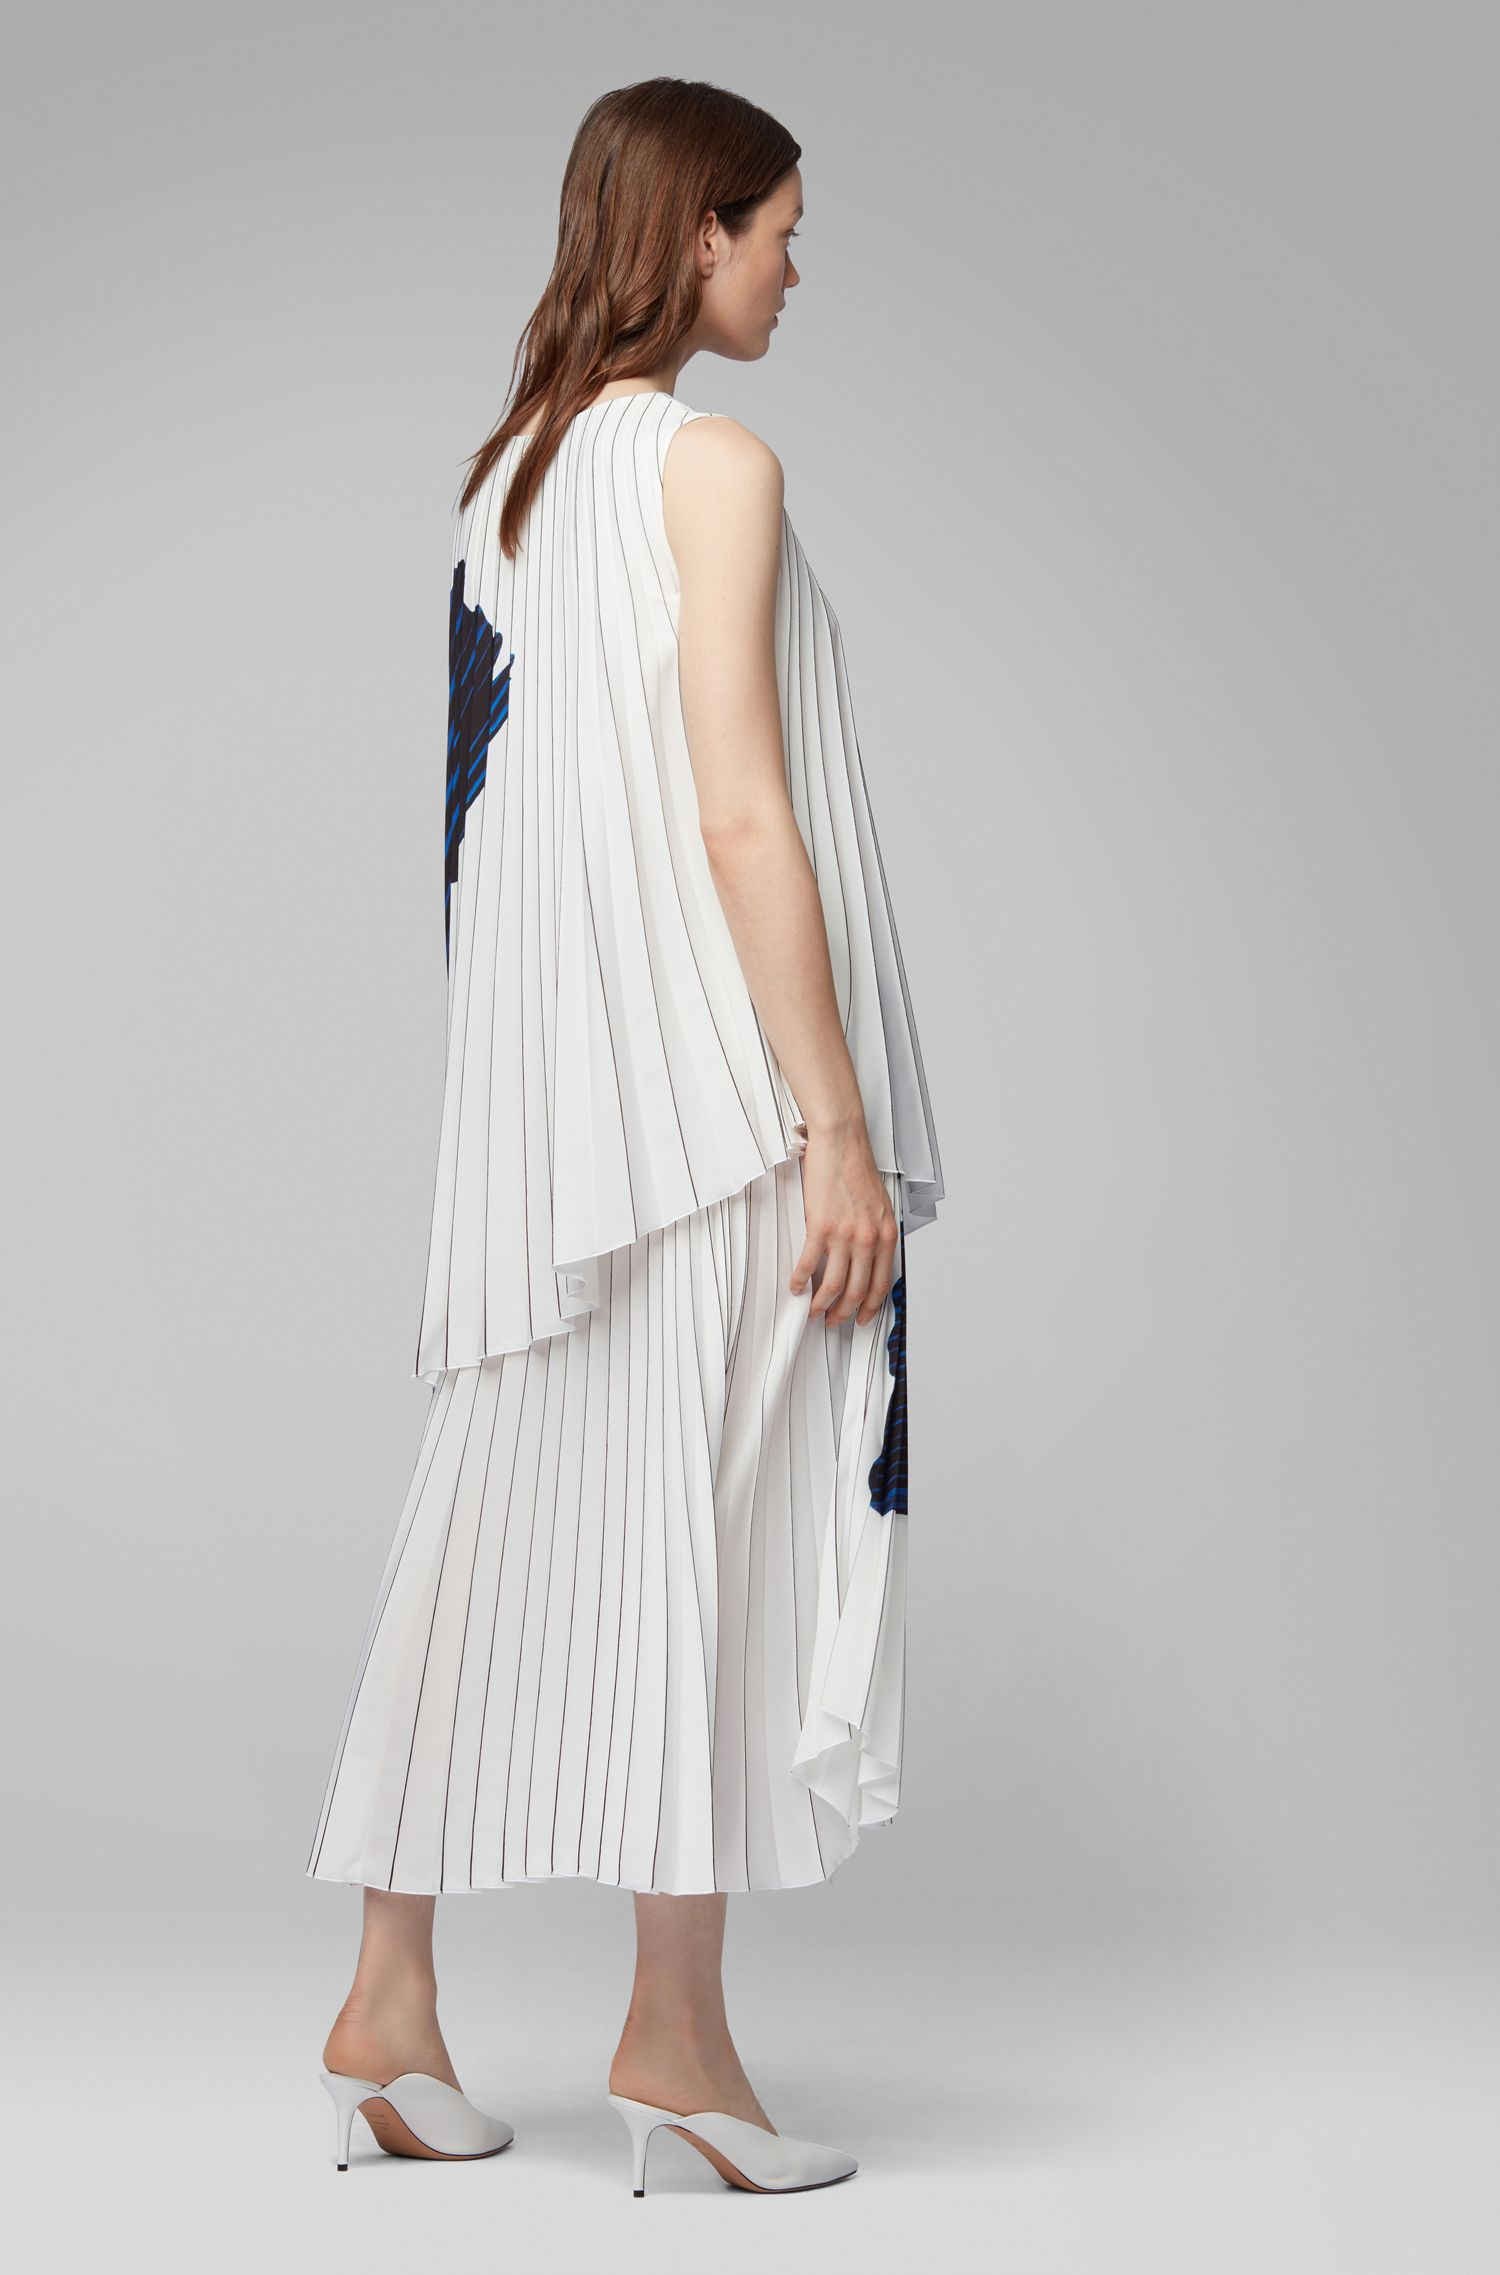 Sleeveless dress in printed plissé with asymmetric layering, Patterned